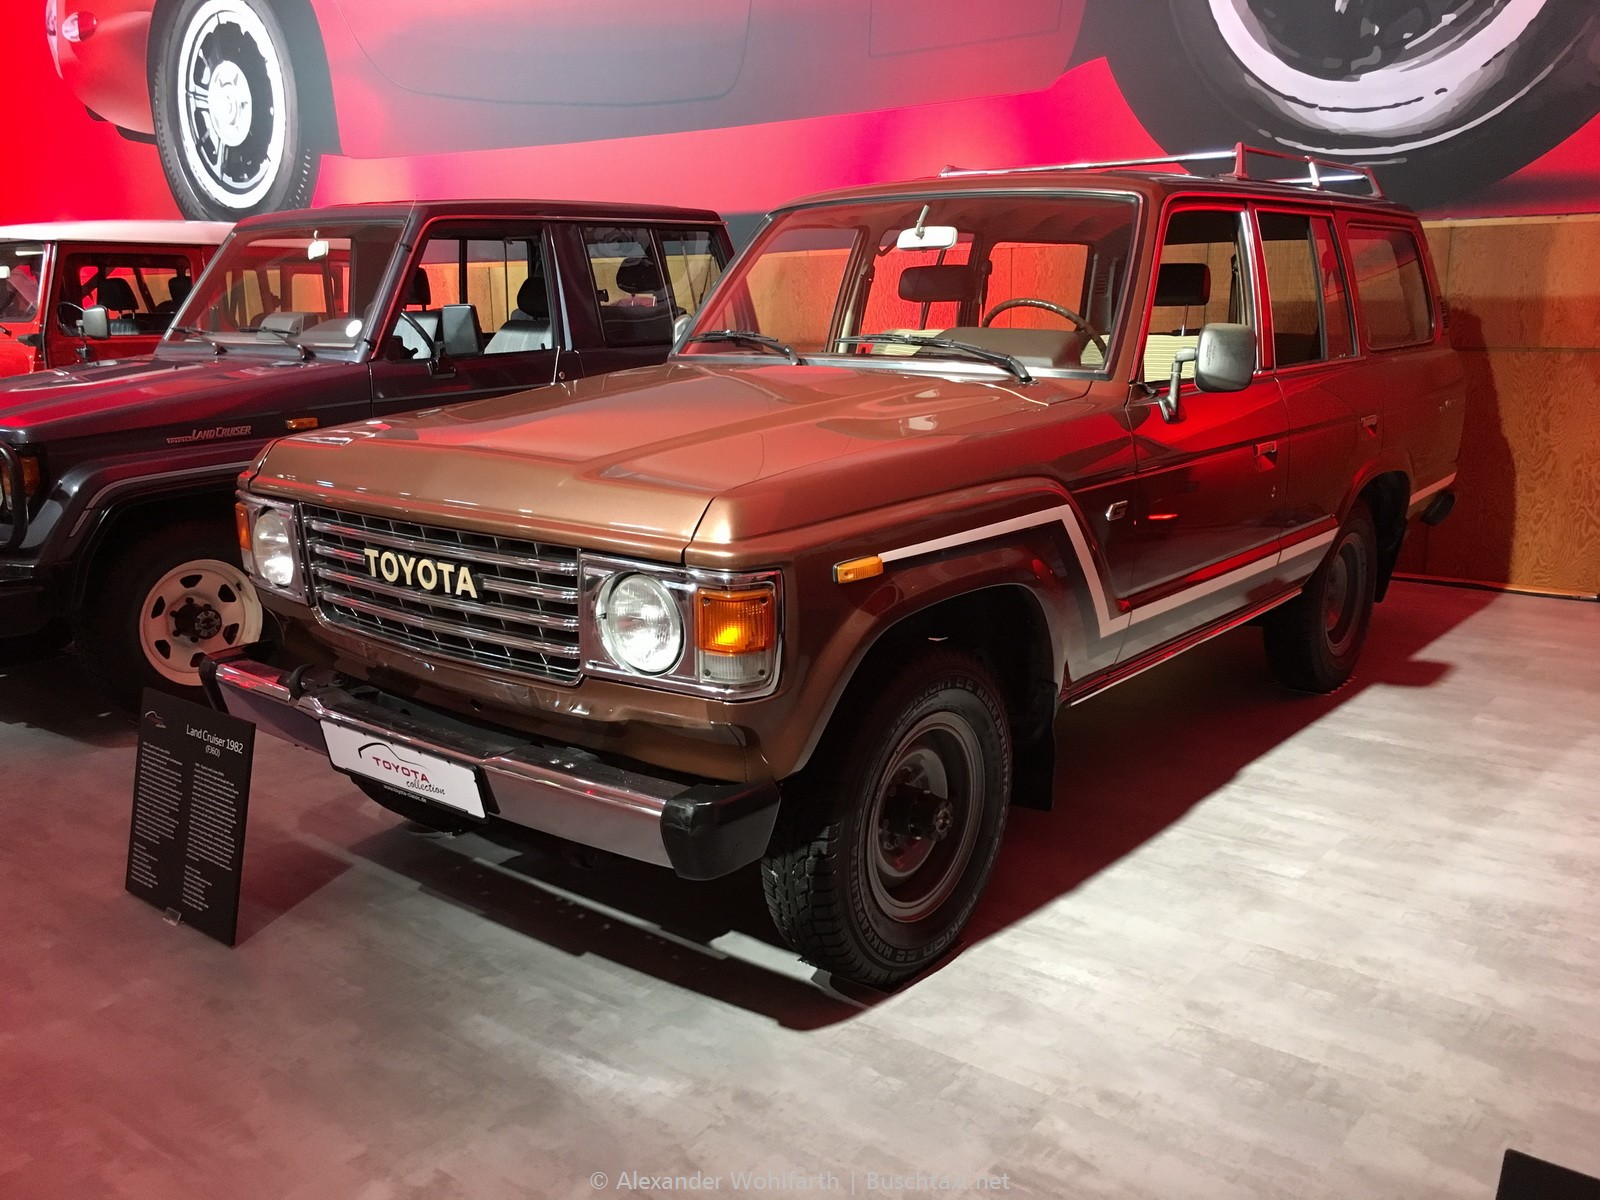 2017-11-23 toyota collection 11